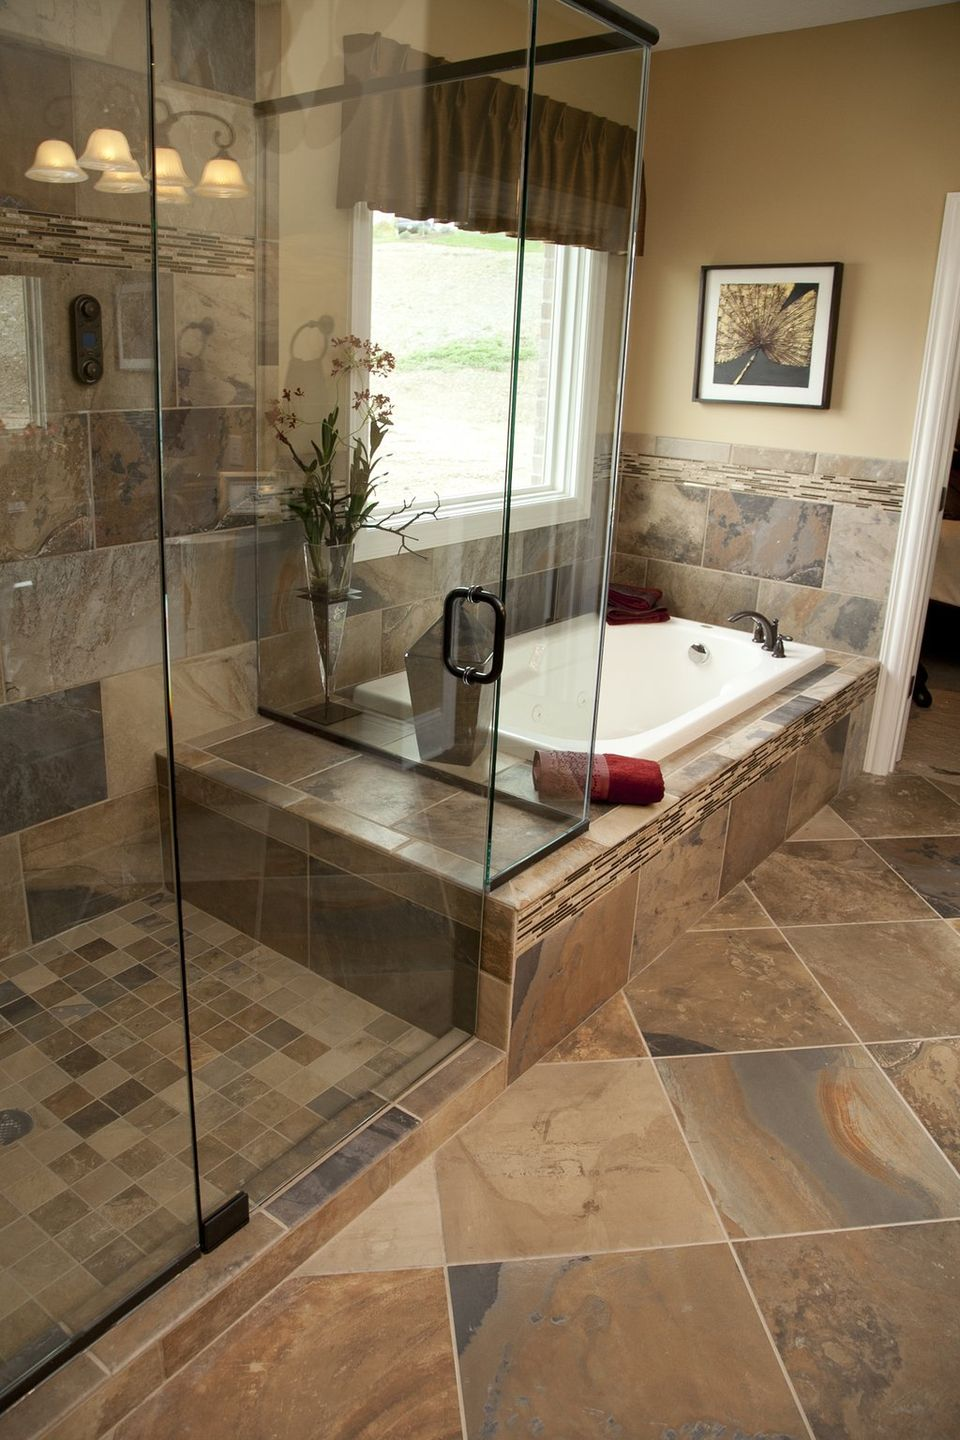 33 stunning pictures and ideas of natural stone bathroom for Bathroom tile designs photos